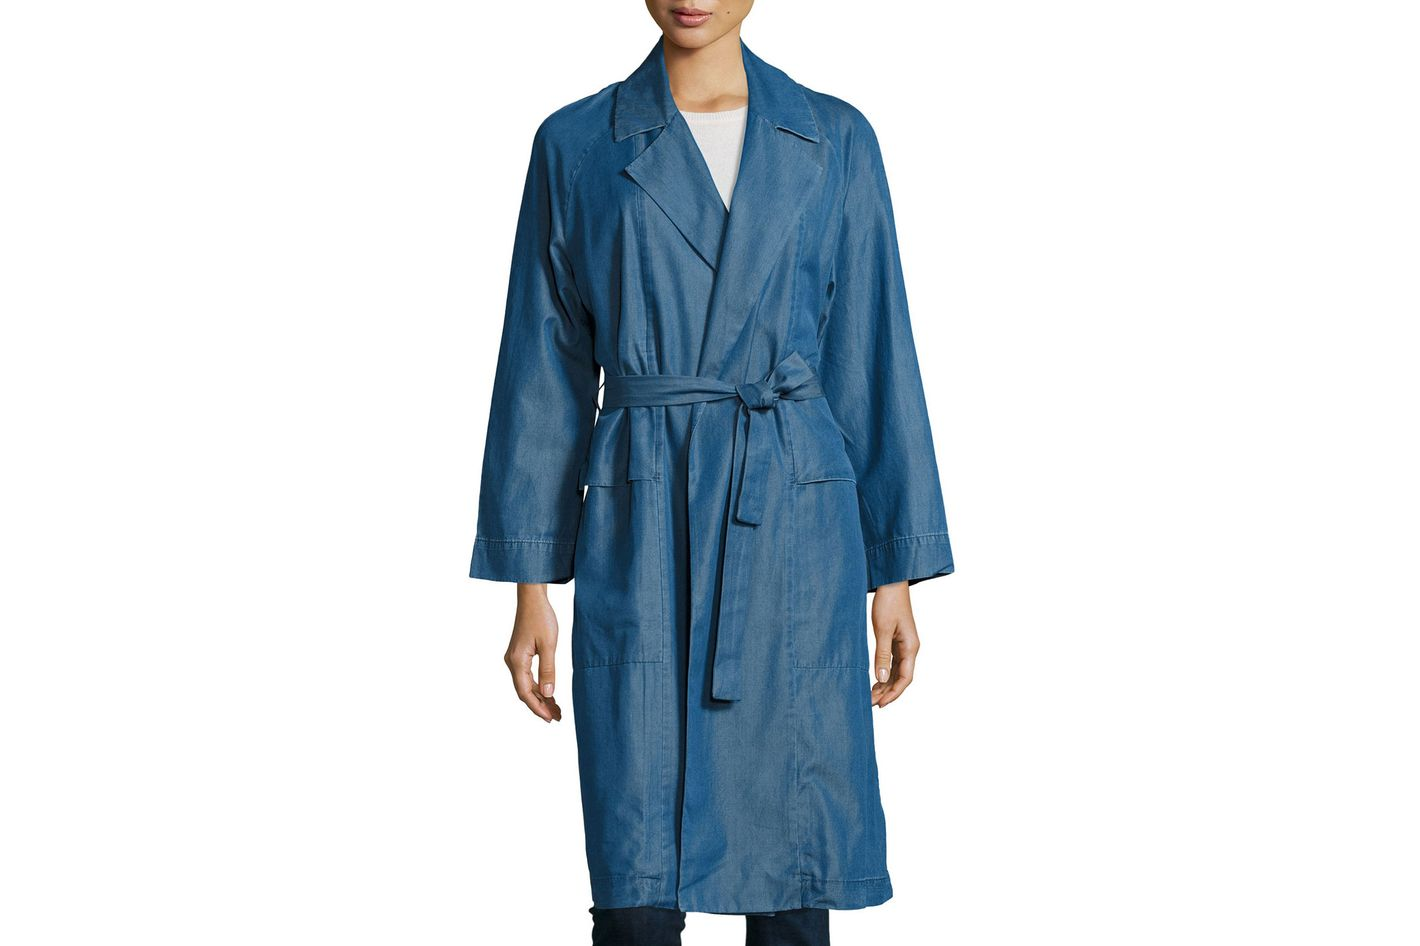 MIH Carmel Chambray Trench Coat